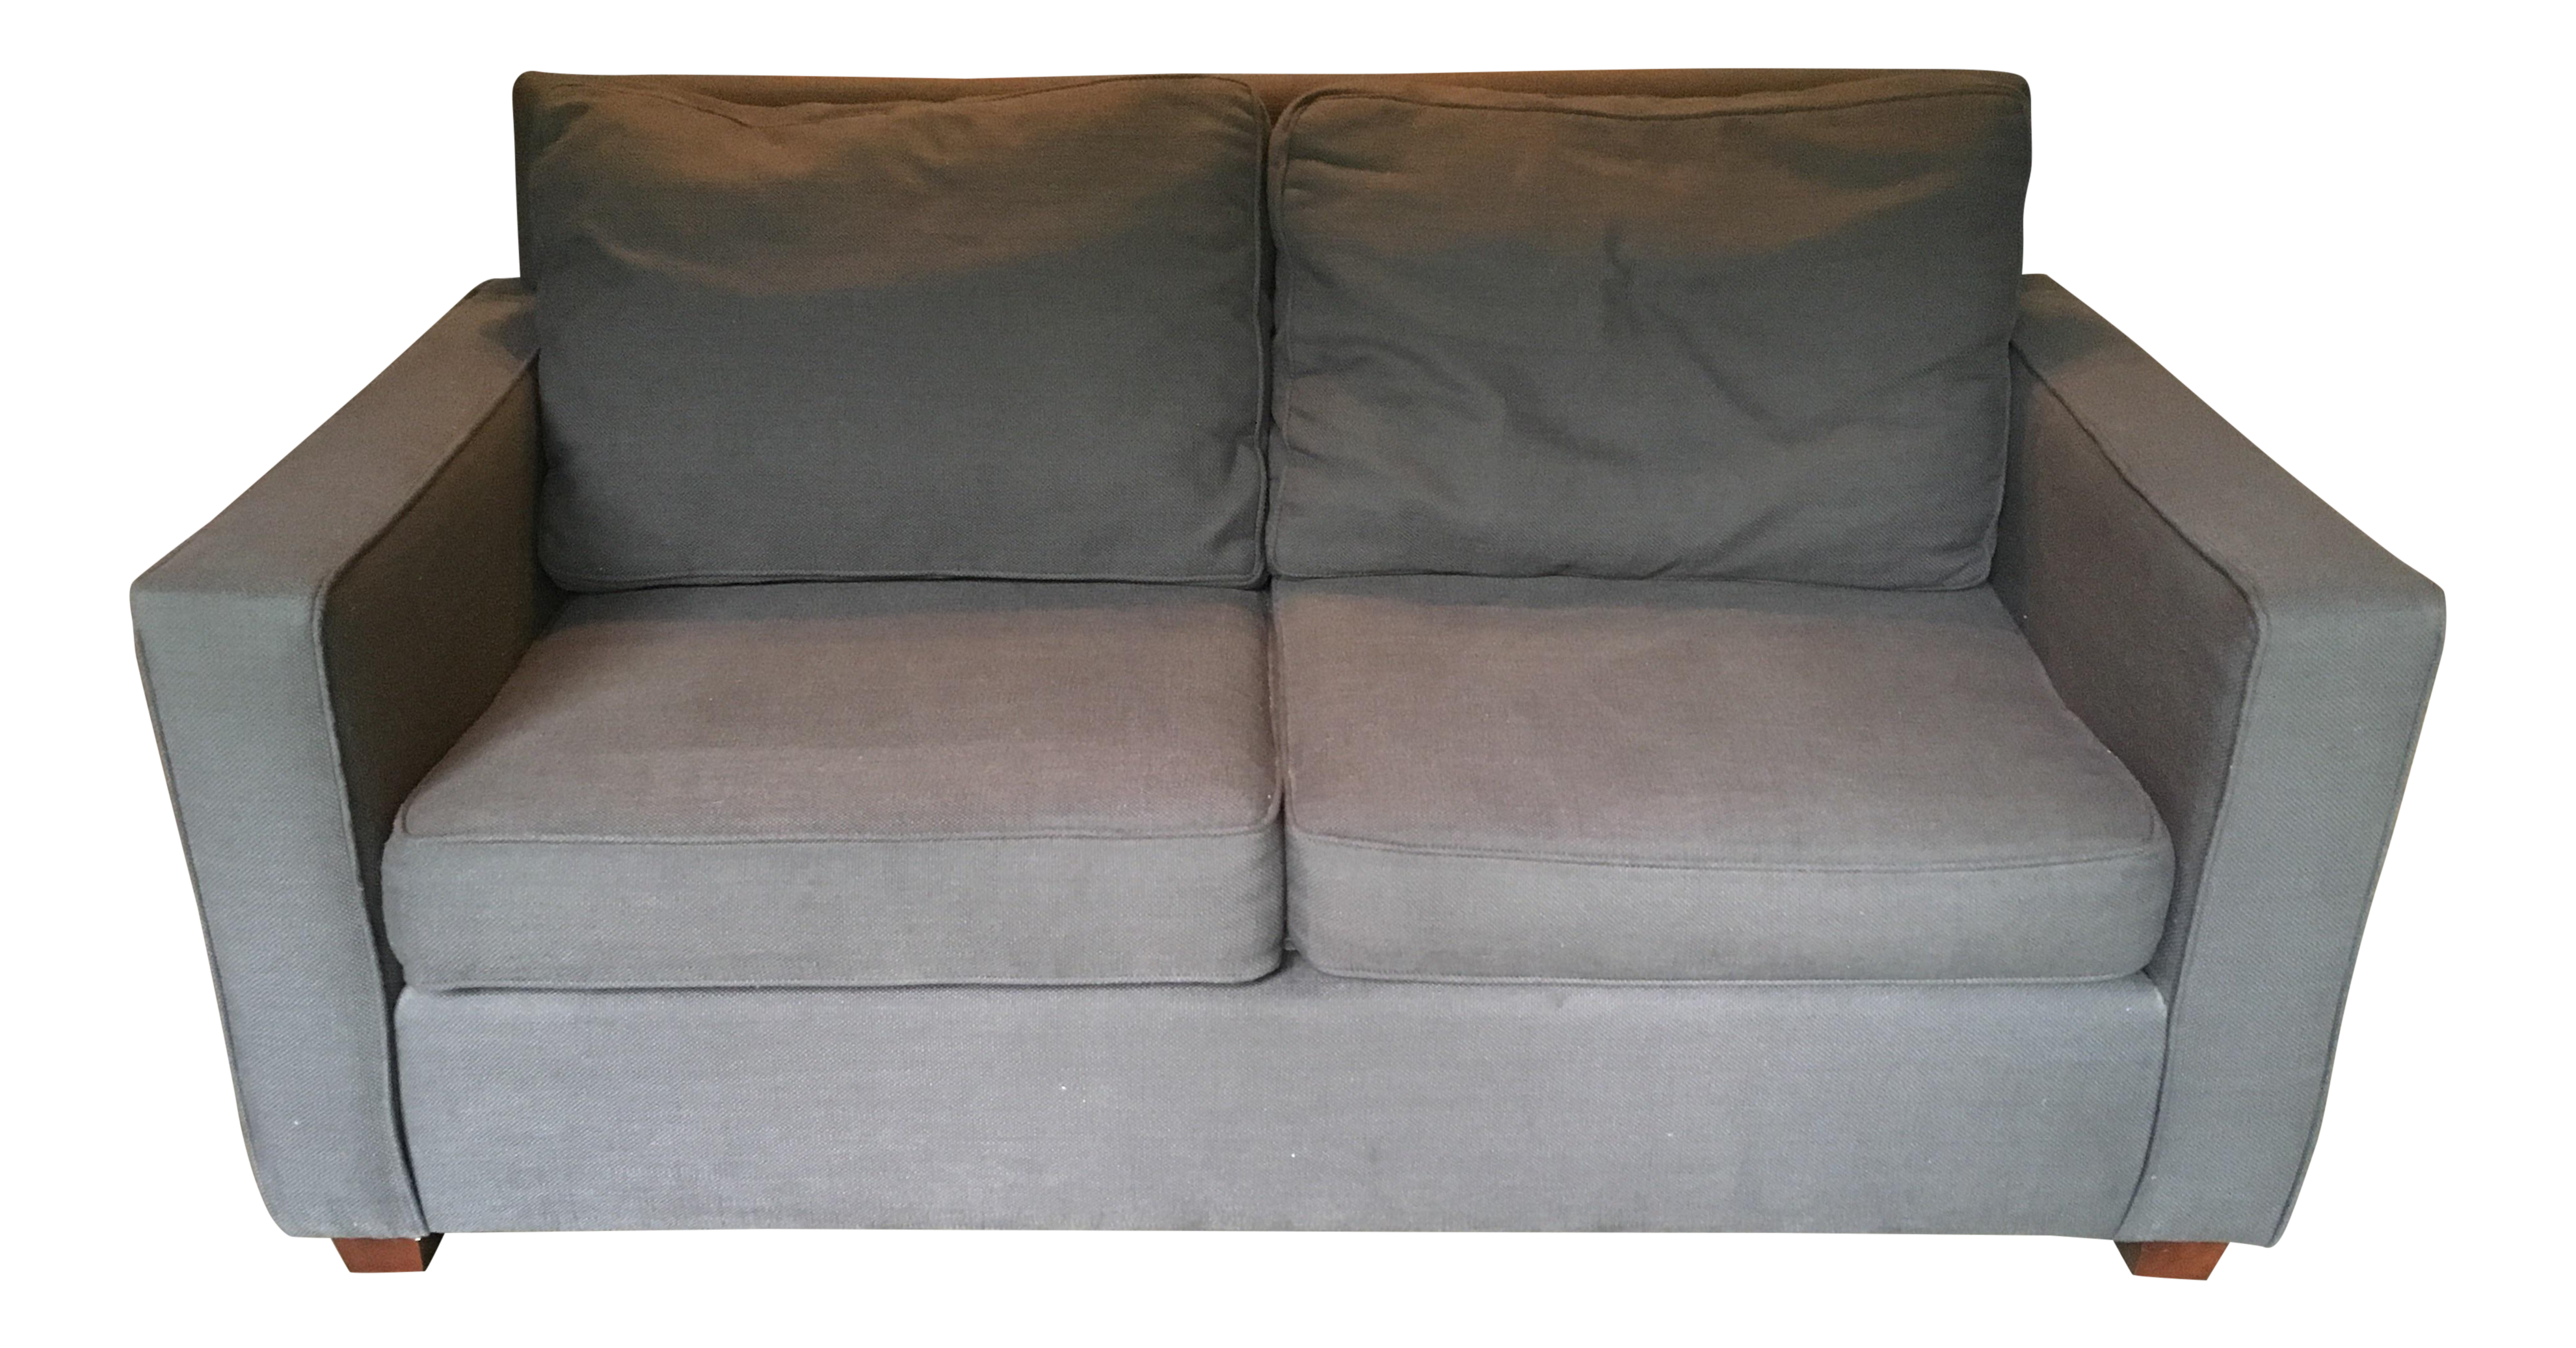 West elm henry sofa chairish for Henry sofa sectional west elm